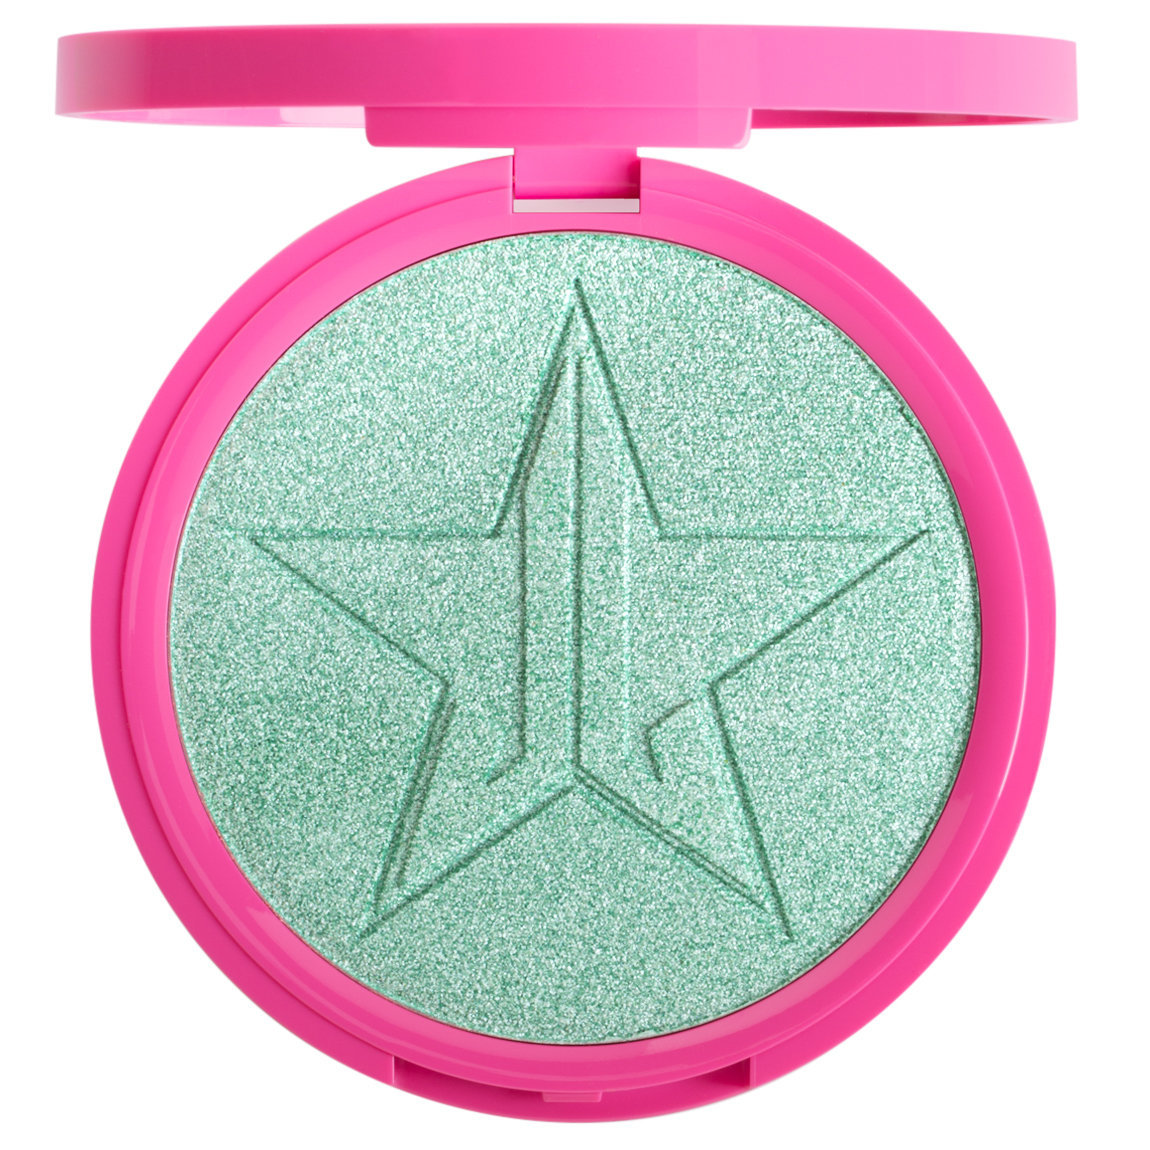 Jeffree Star Cosmetics Skin Frost Mint Condition product smear.